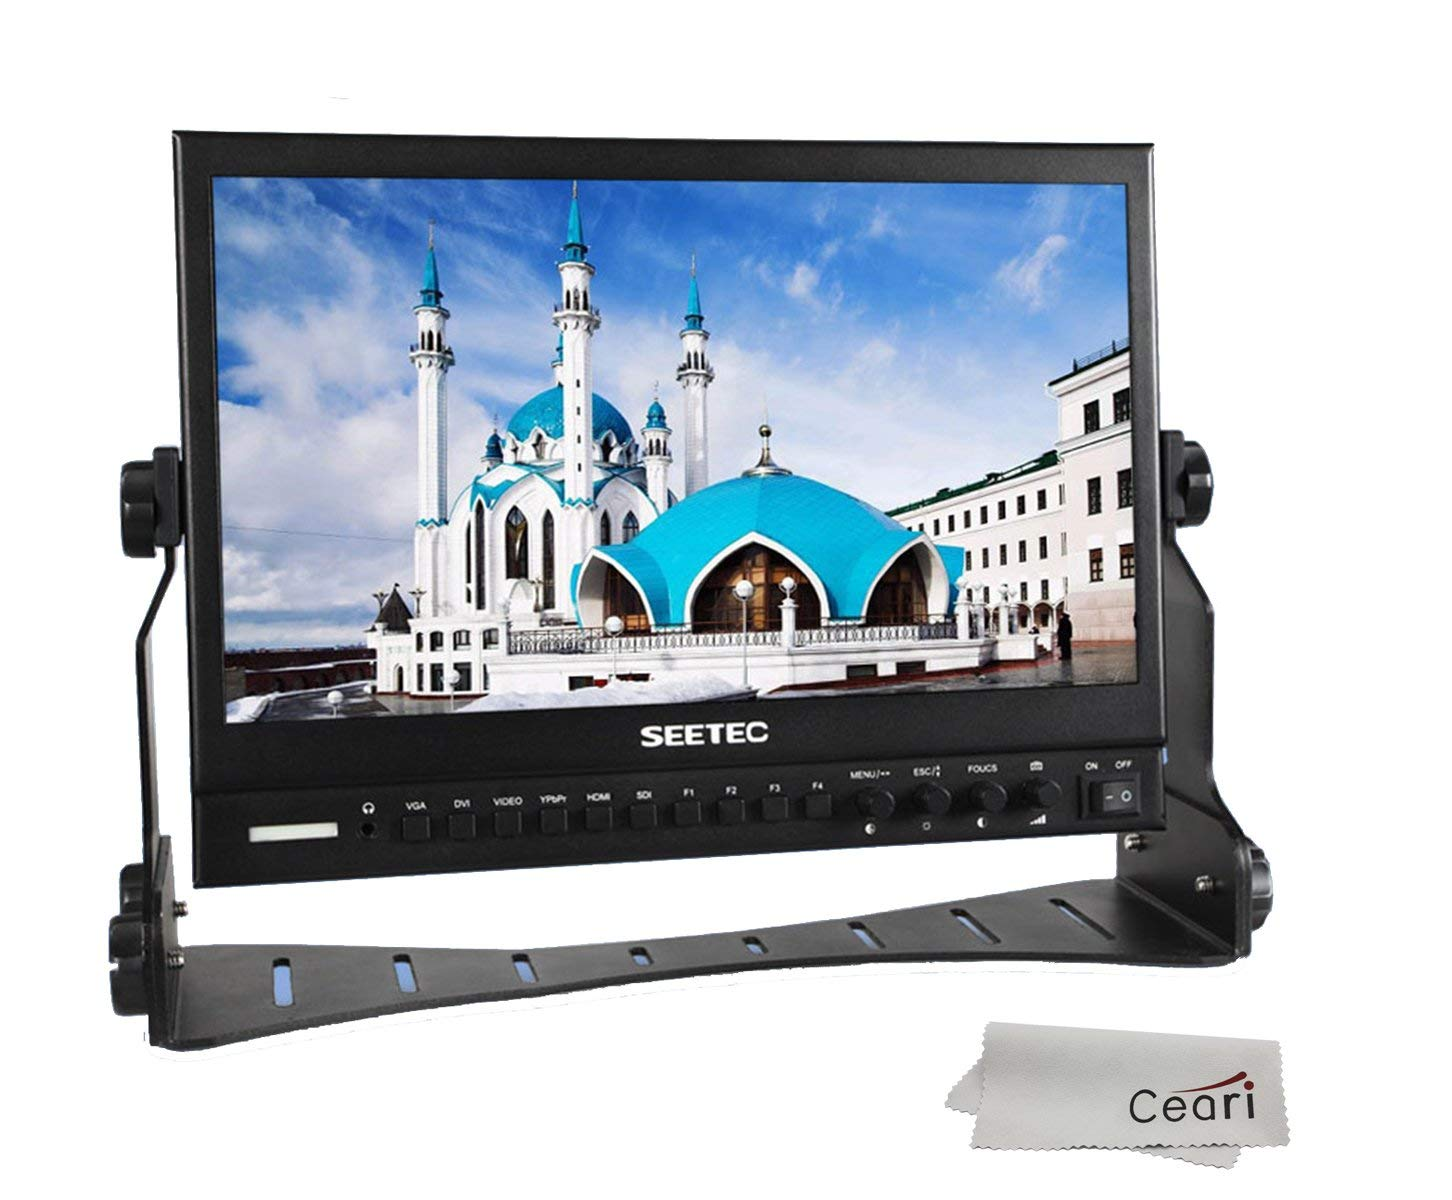 SEETEC P133-9HSD 13.3'' IPS 1920x1080 Aluminum Pro Broadcast LCD Monitor with Peaking Focus Assist Check Field 3G-SDI HDMI AV YPbPr DVI-I Video Audio Inputs with MicroFiber Cloth by SEETEC